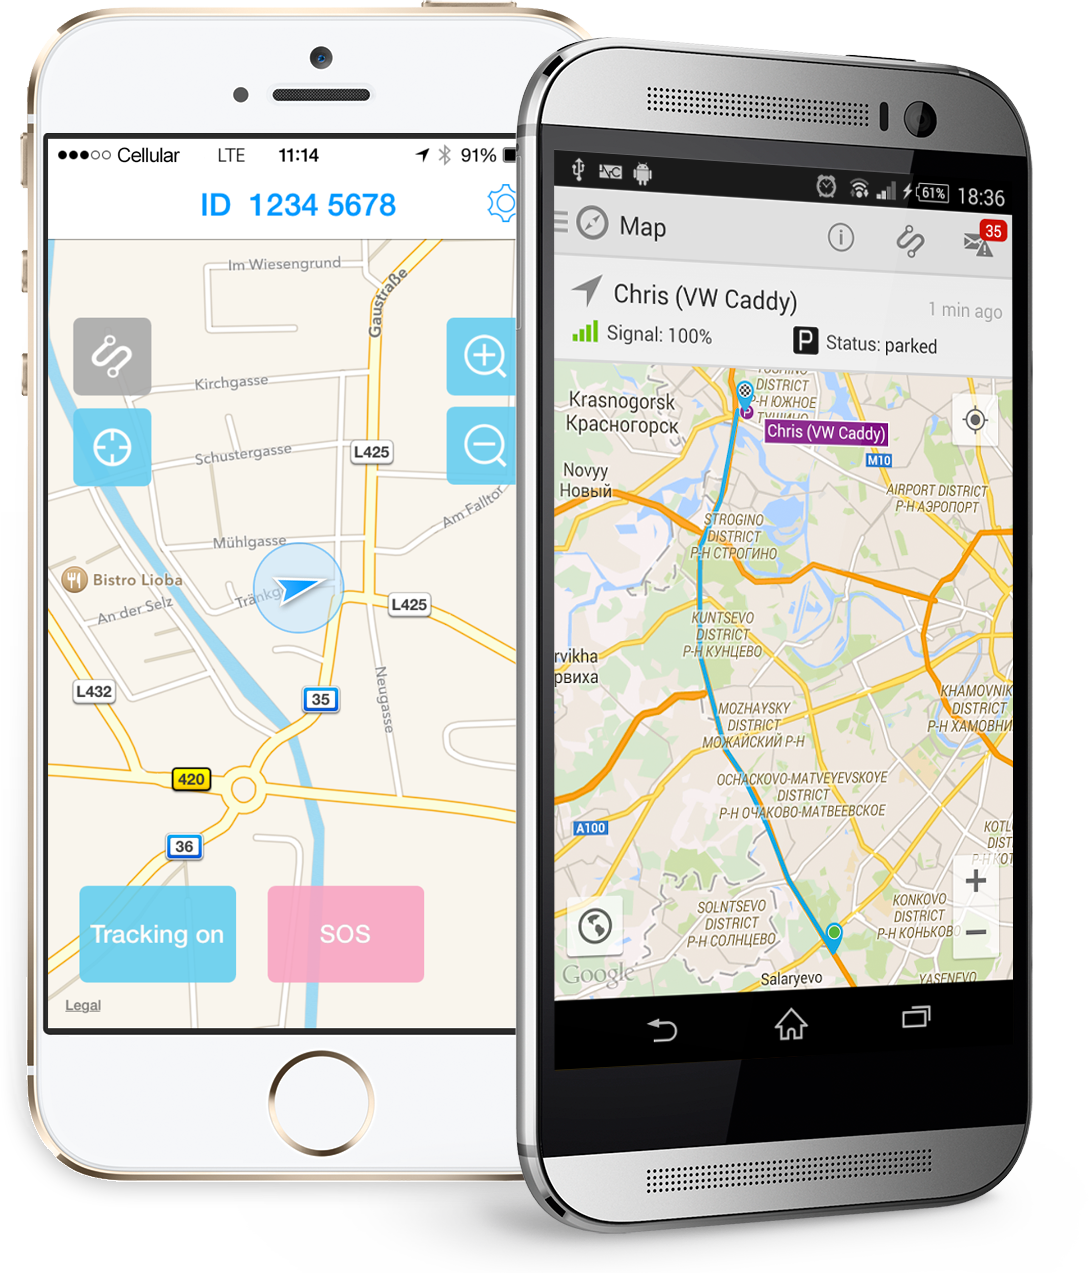 top 8 gps tracking apps to track android devices sniper